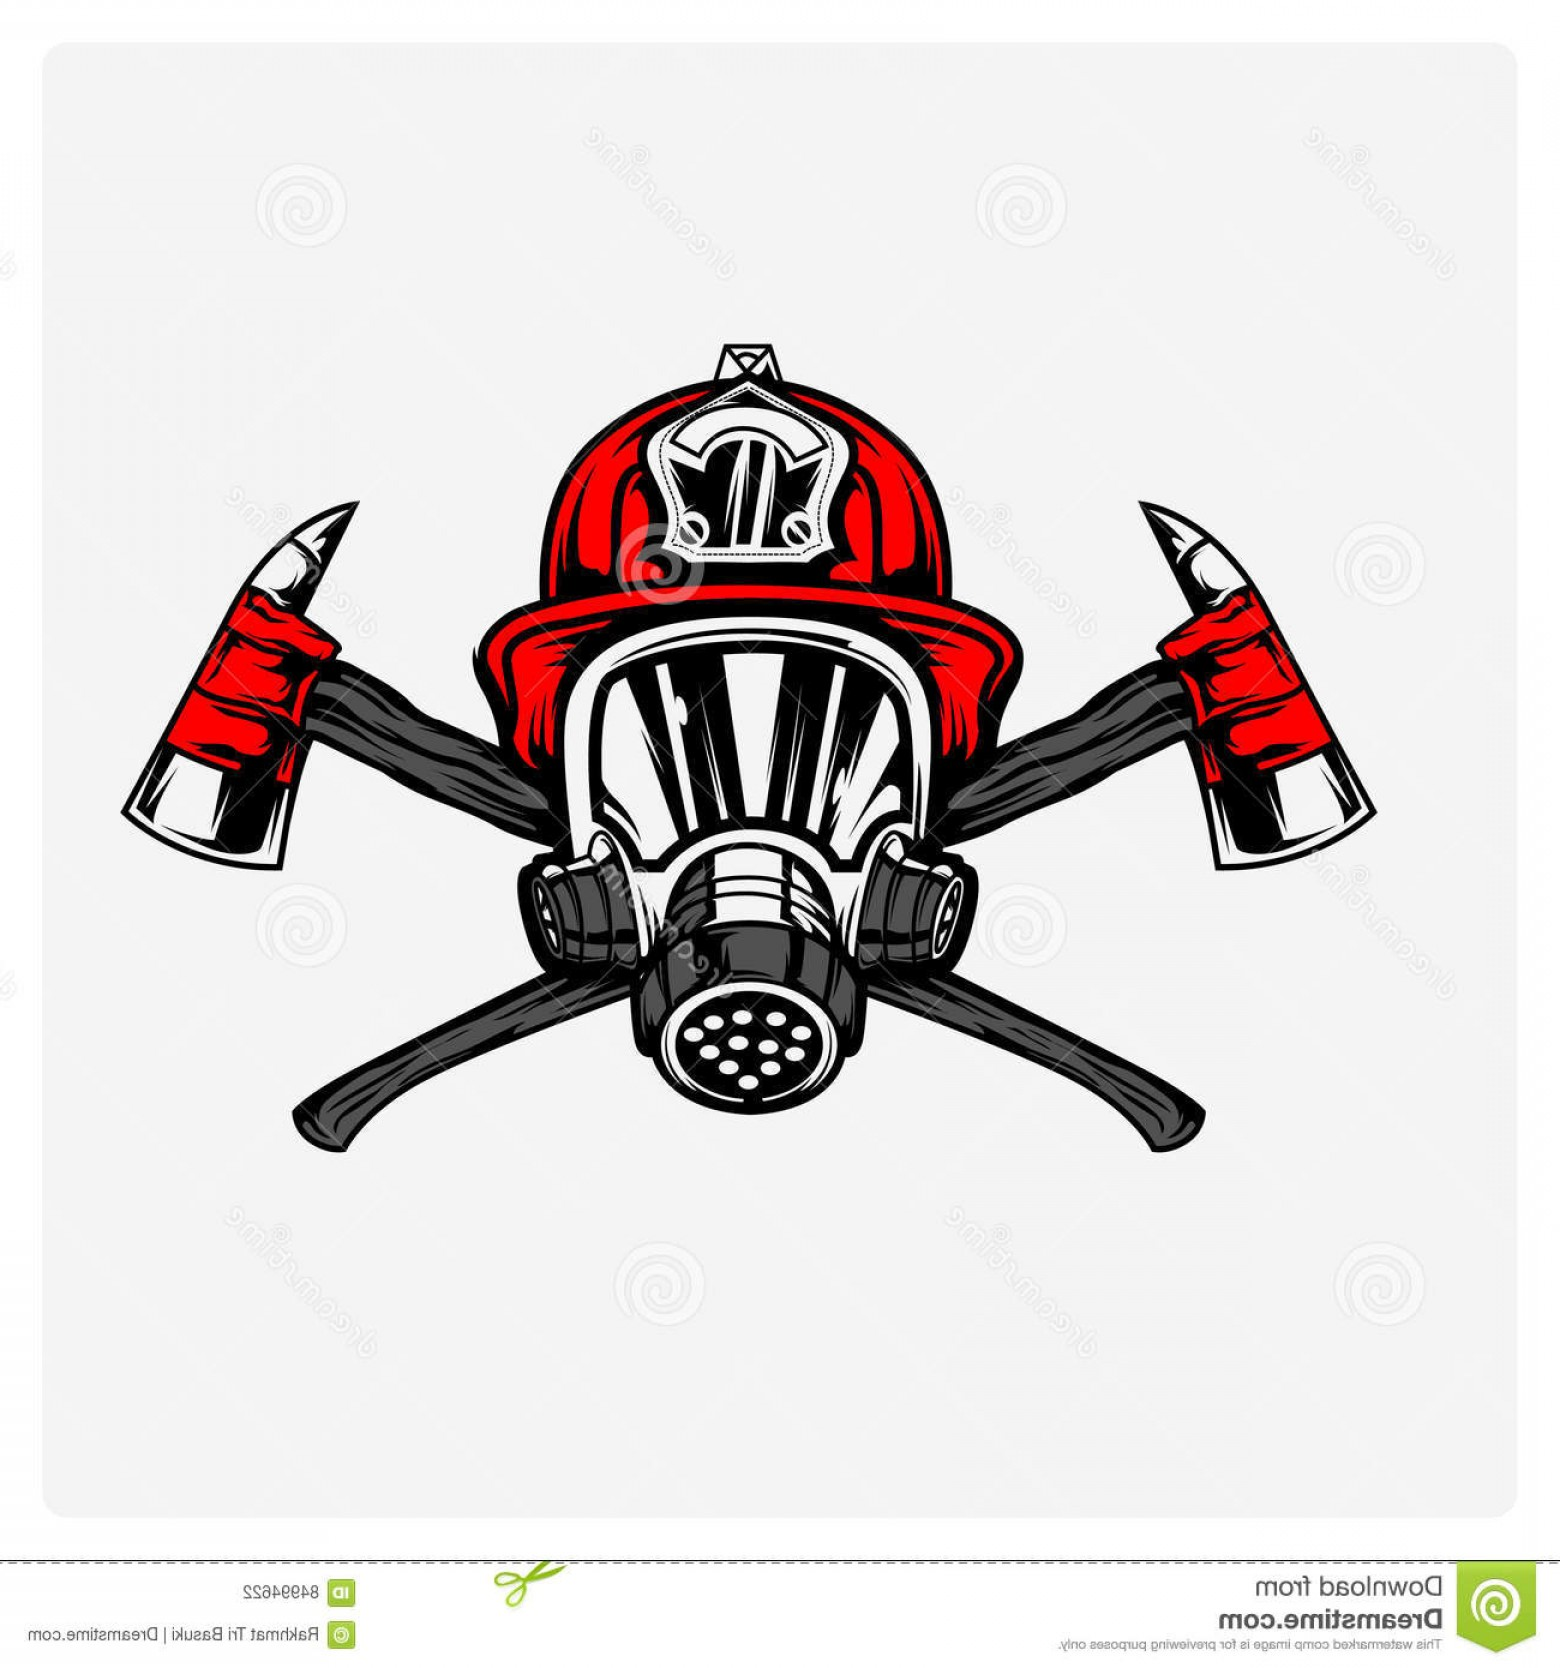 Fire Fighter Logo Vector: Stock Illustration Illustration Vector Firefighter Design Can Be Used Logo Poster Icon T Shirt Est Image